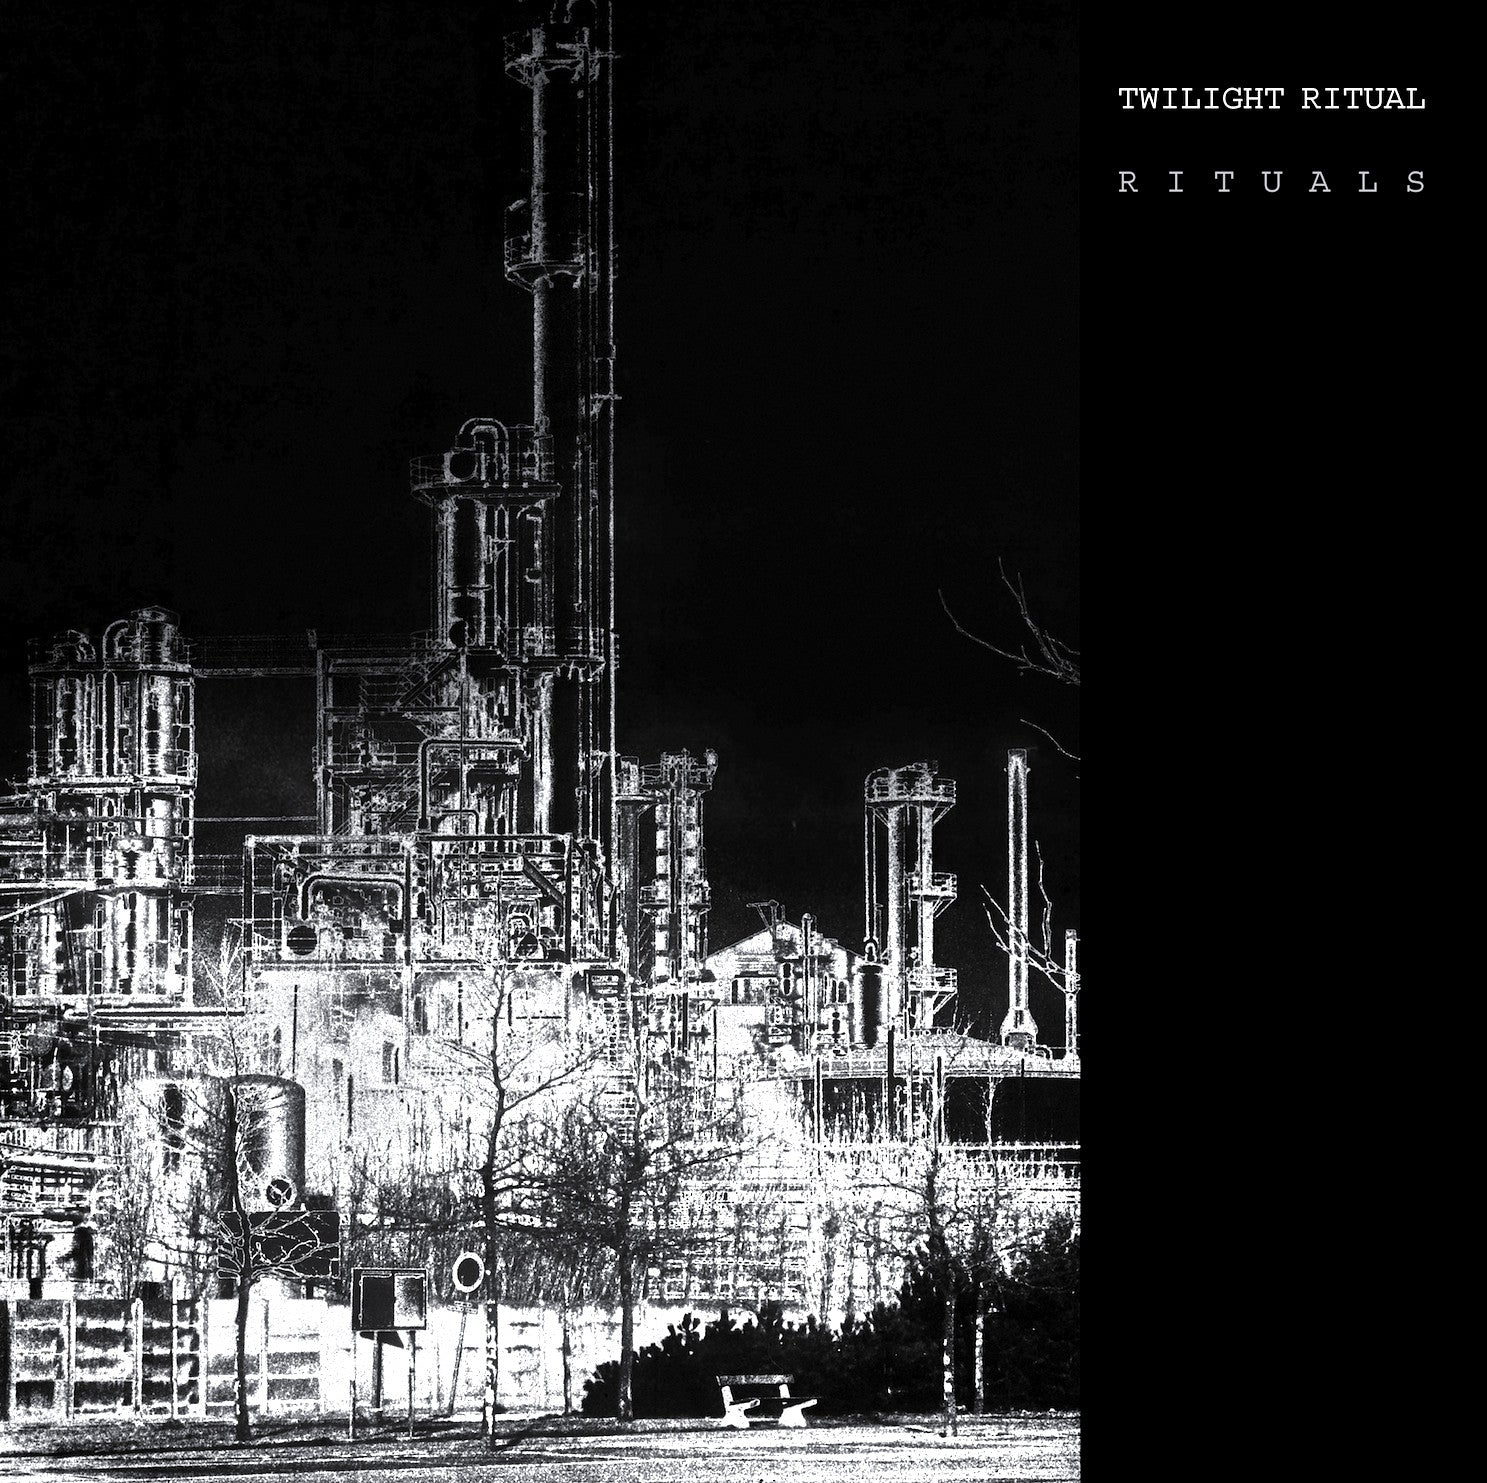 Twilight Ritual - Rituals LP - AguirreRecords